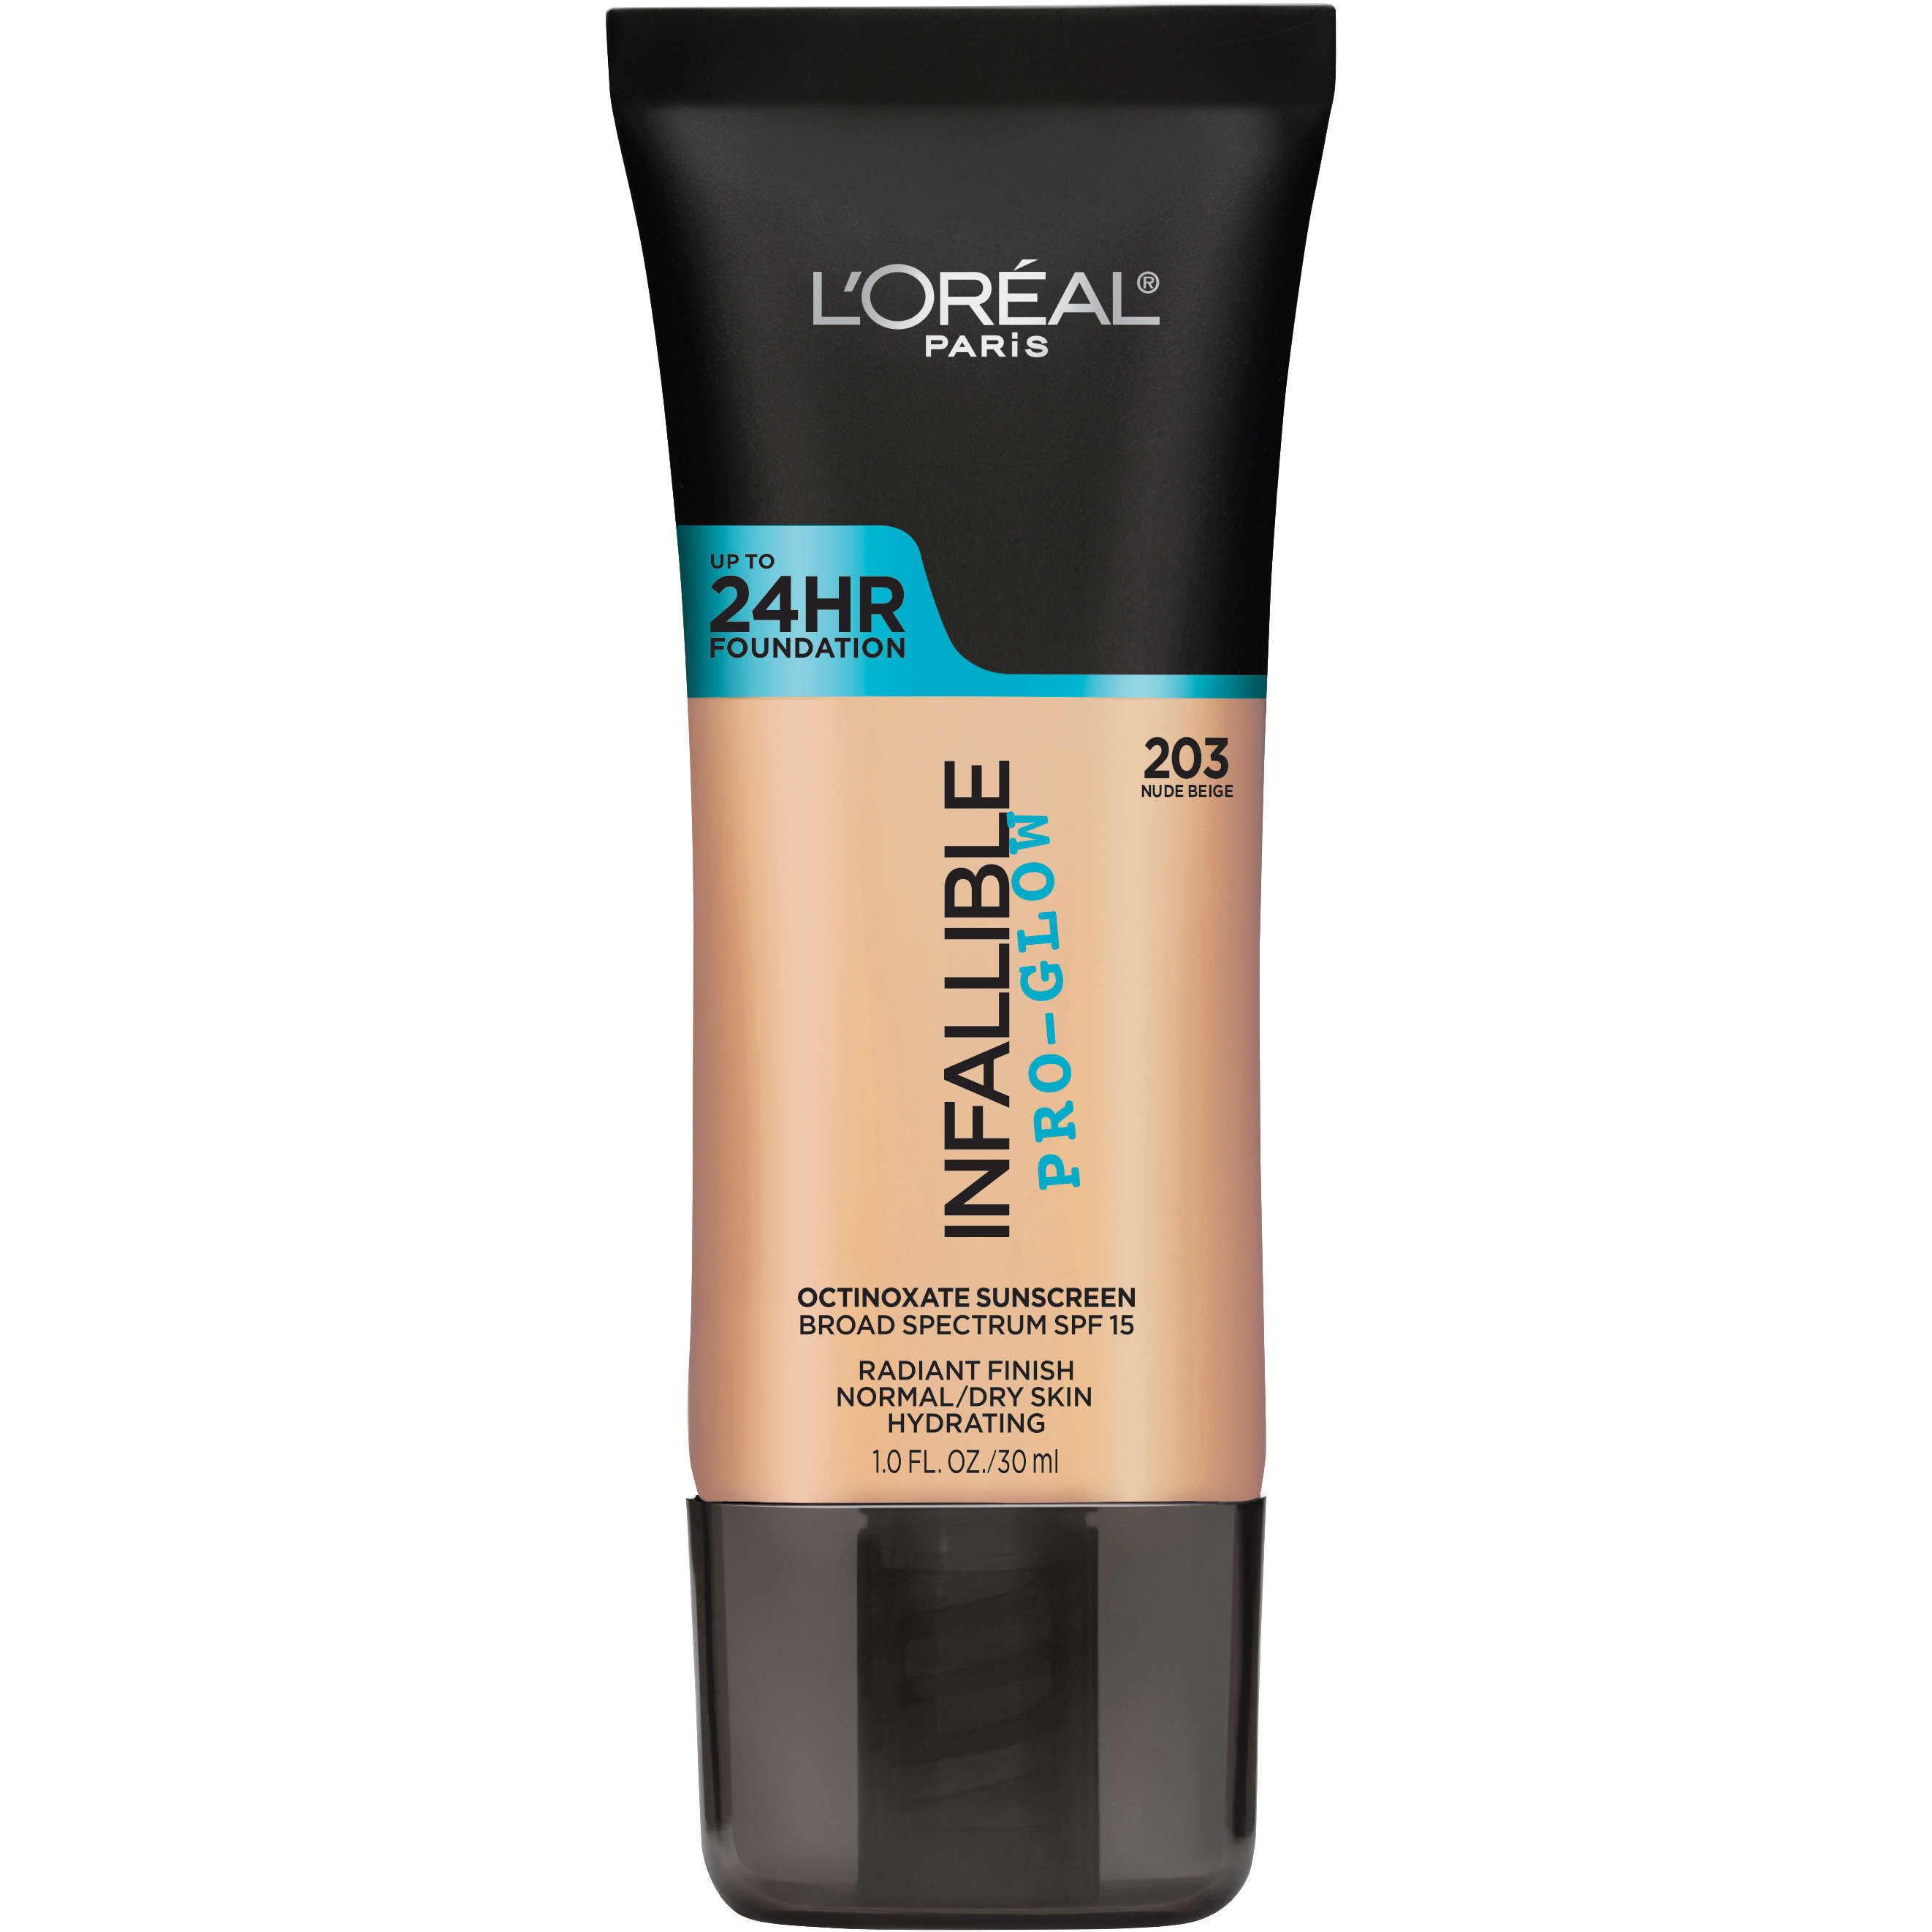 L'Oreal Paris Infallible Pro-Glow Foundation, Nude Beige